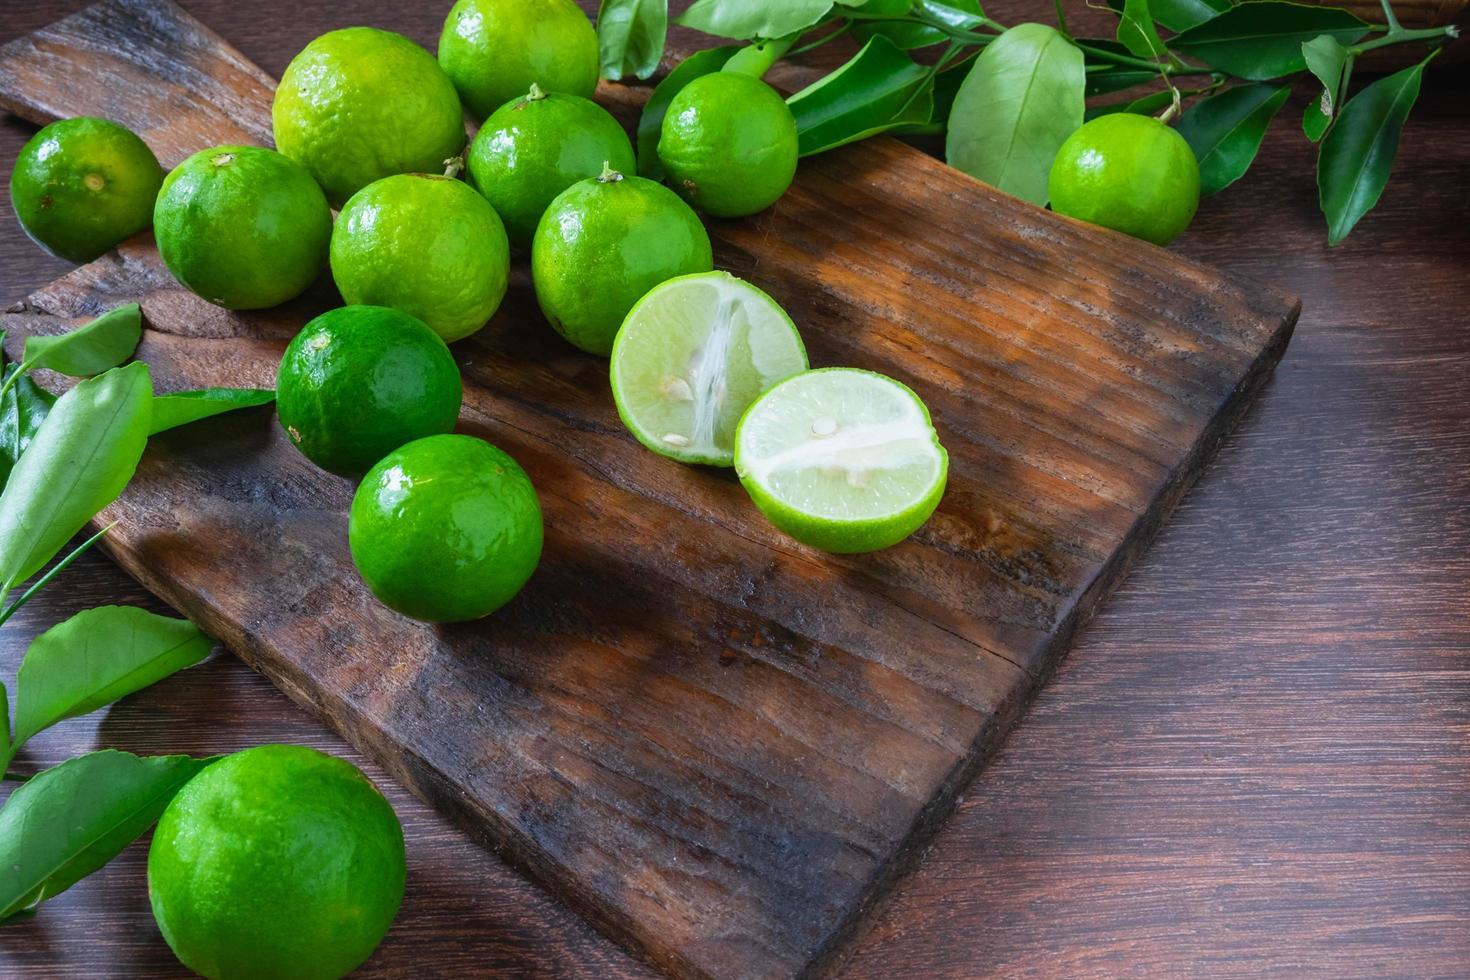 Lots of limes from the garden photo